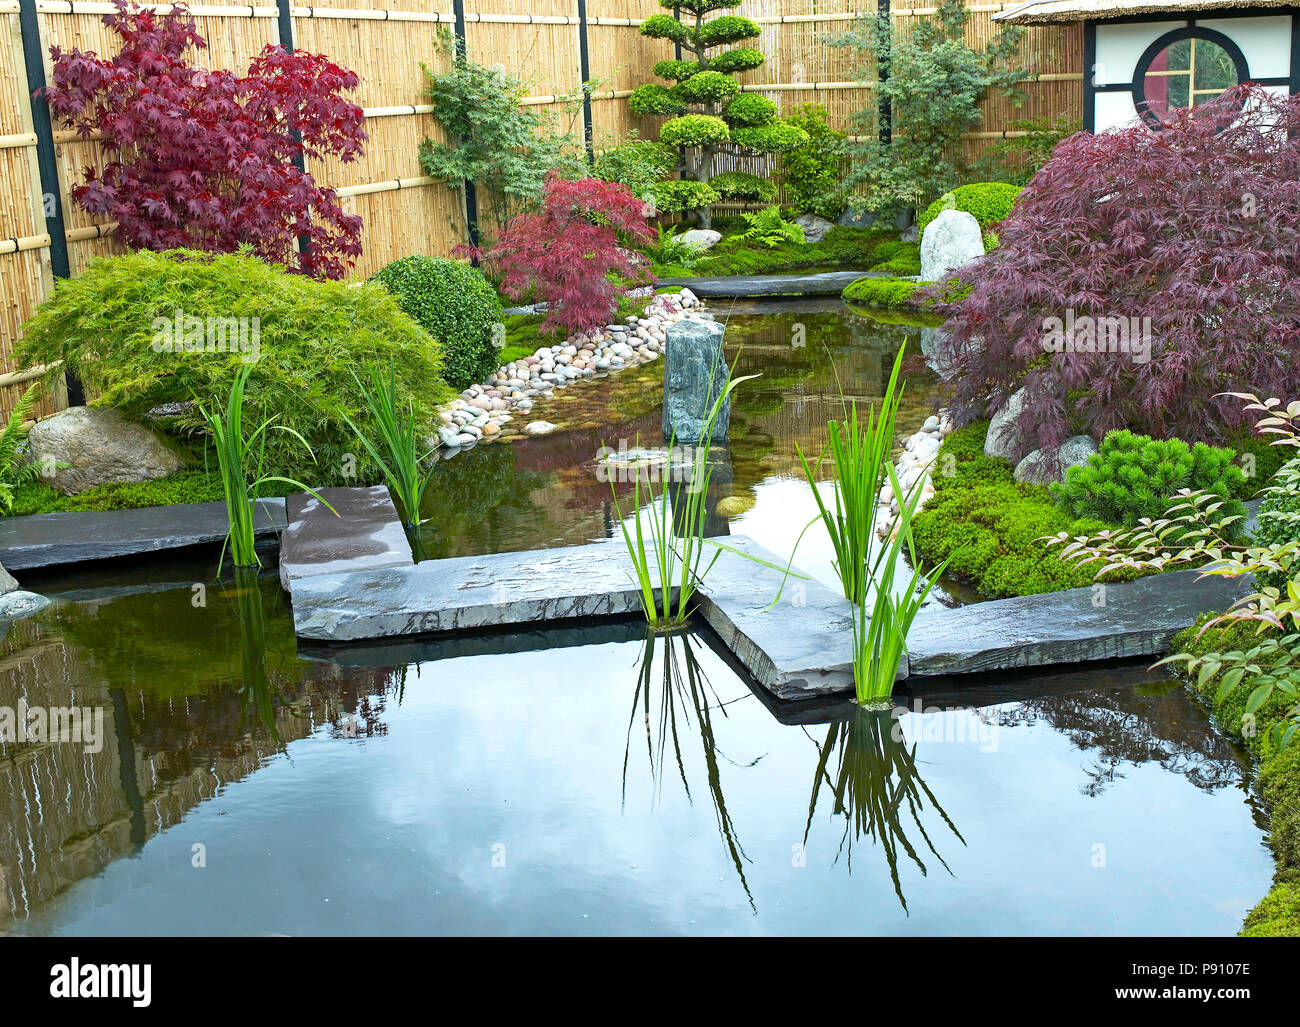 Traditional Japanese Water Garden With Plants, Shrubs, Rocks, Tea House And  Stone Bridge